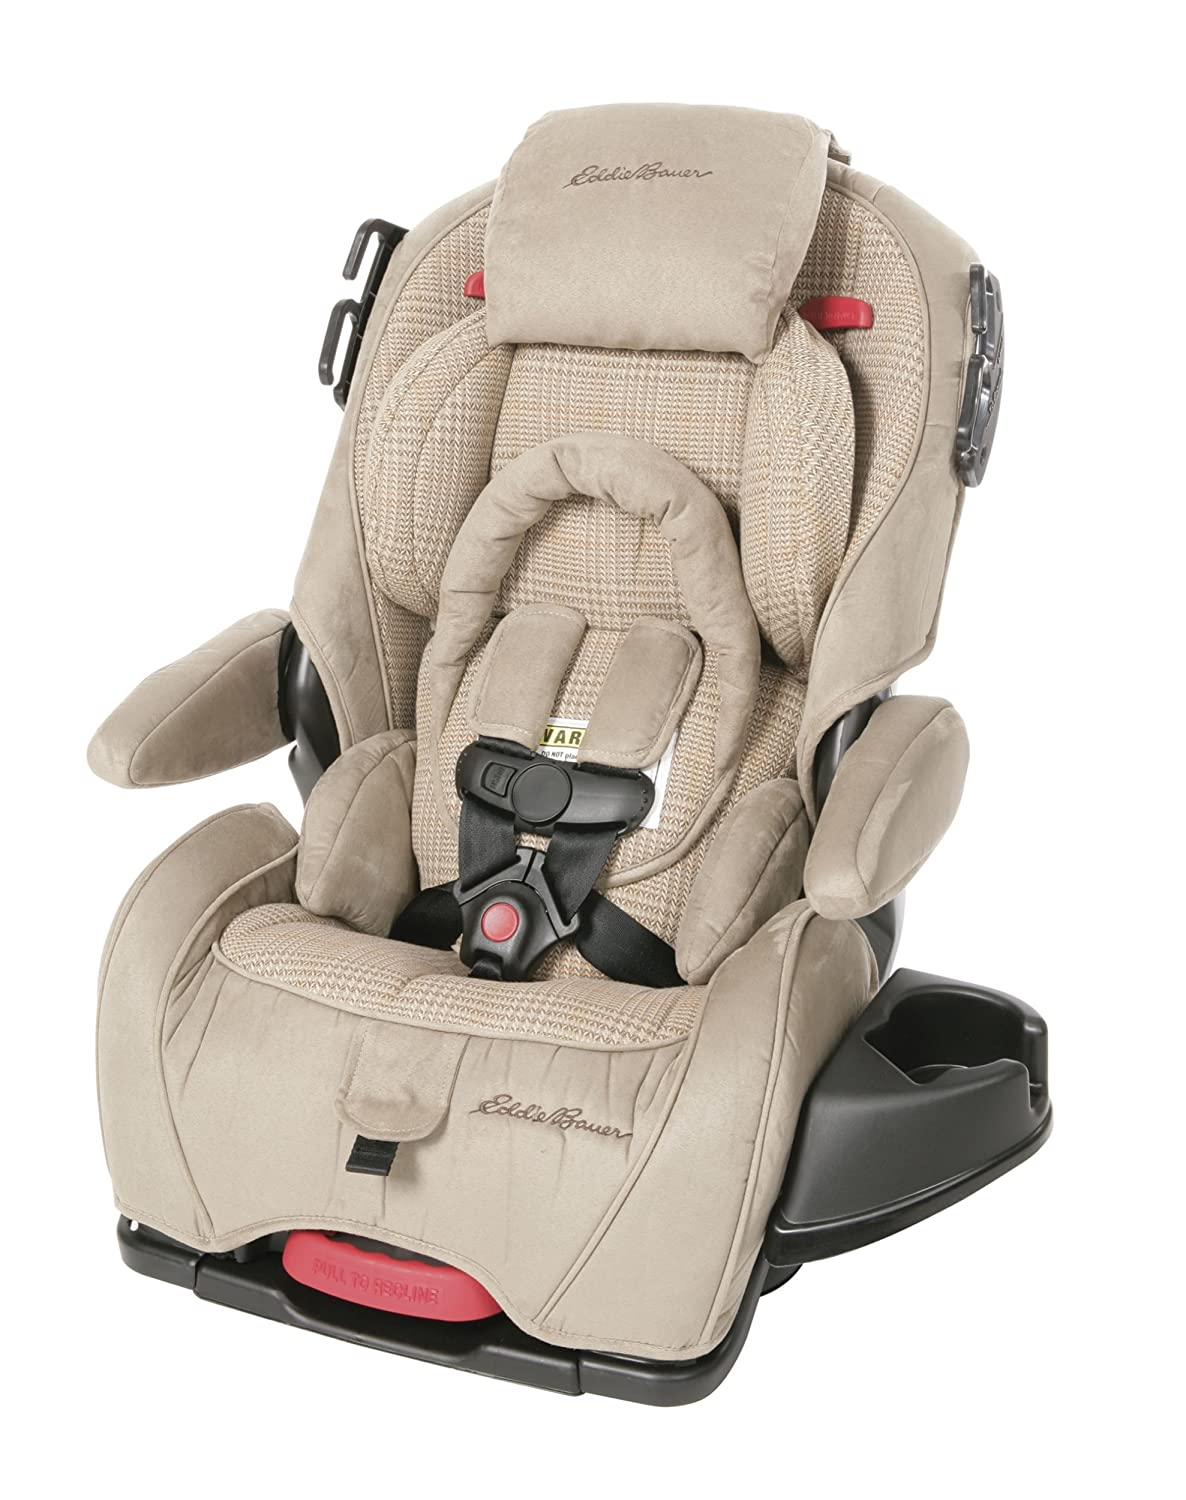 Amazon Eddie Bauer Deluxe 3 In 1 Convertible Car Seat Discontinued By Manufacturer Child Safety Seats Baby